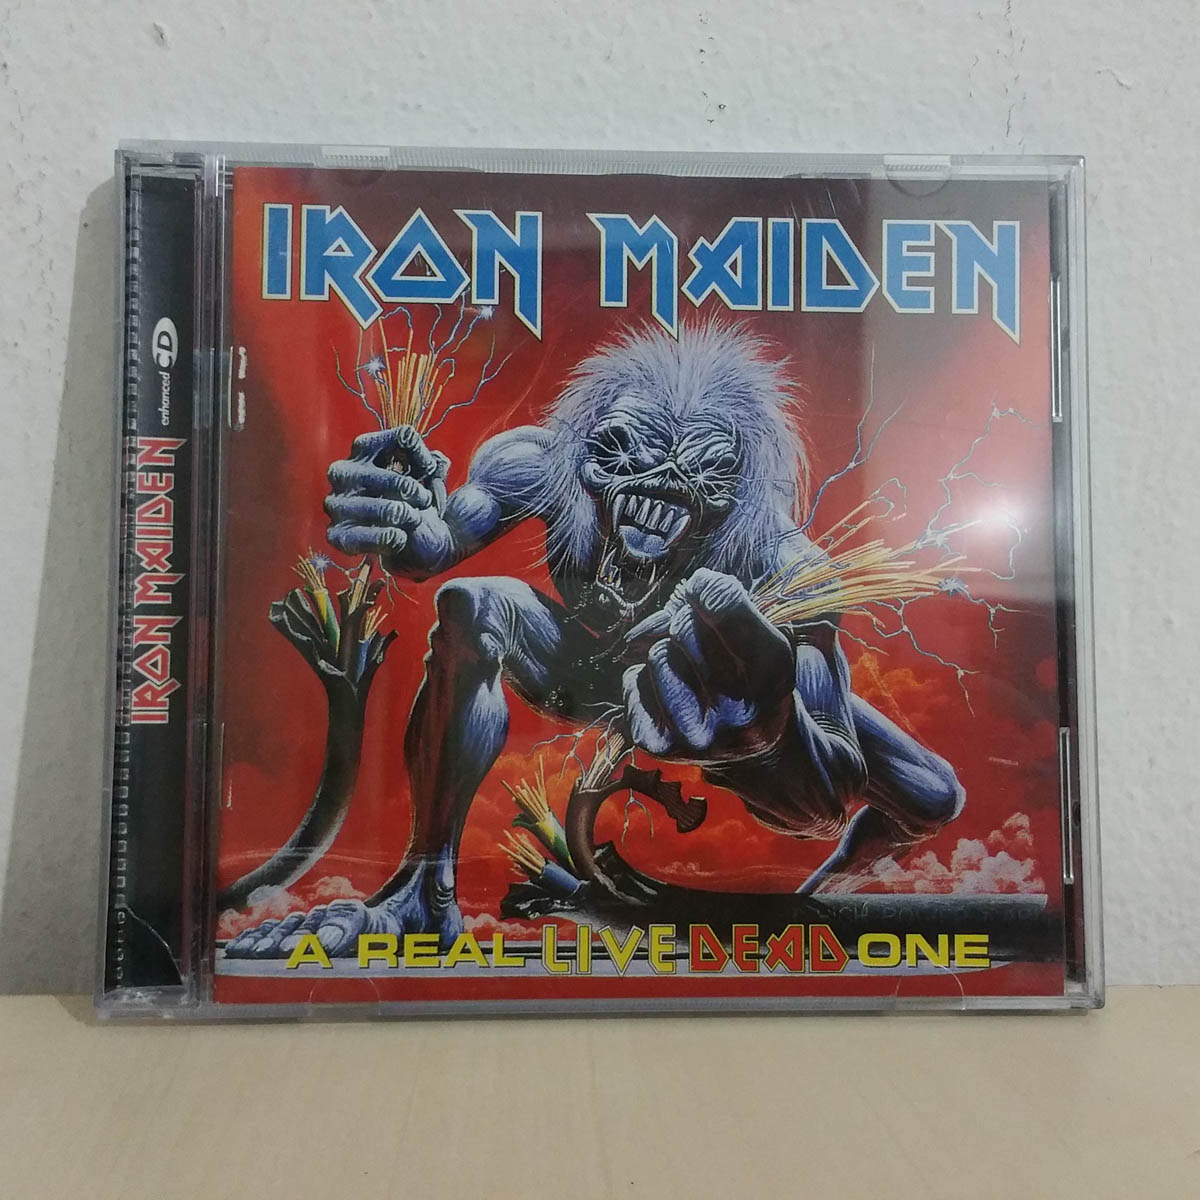 Iron Maiden - A Real Live Dead One - Iron Maiden Collector